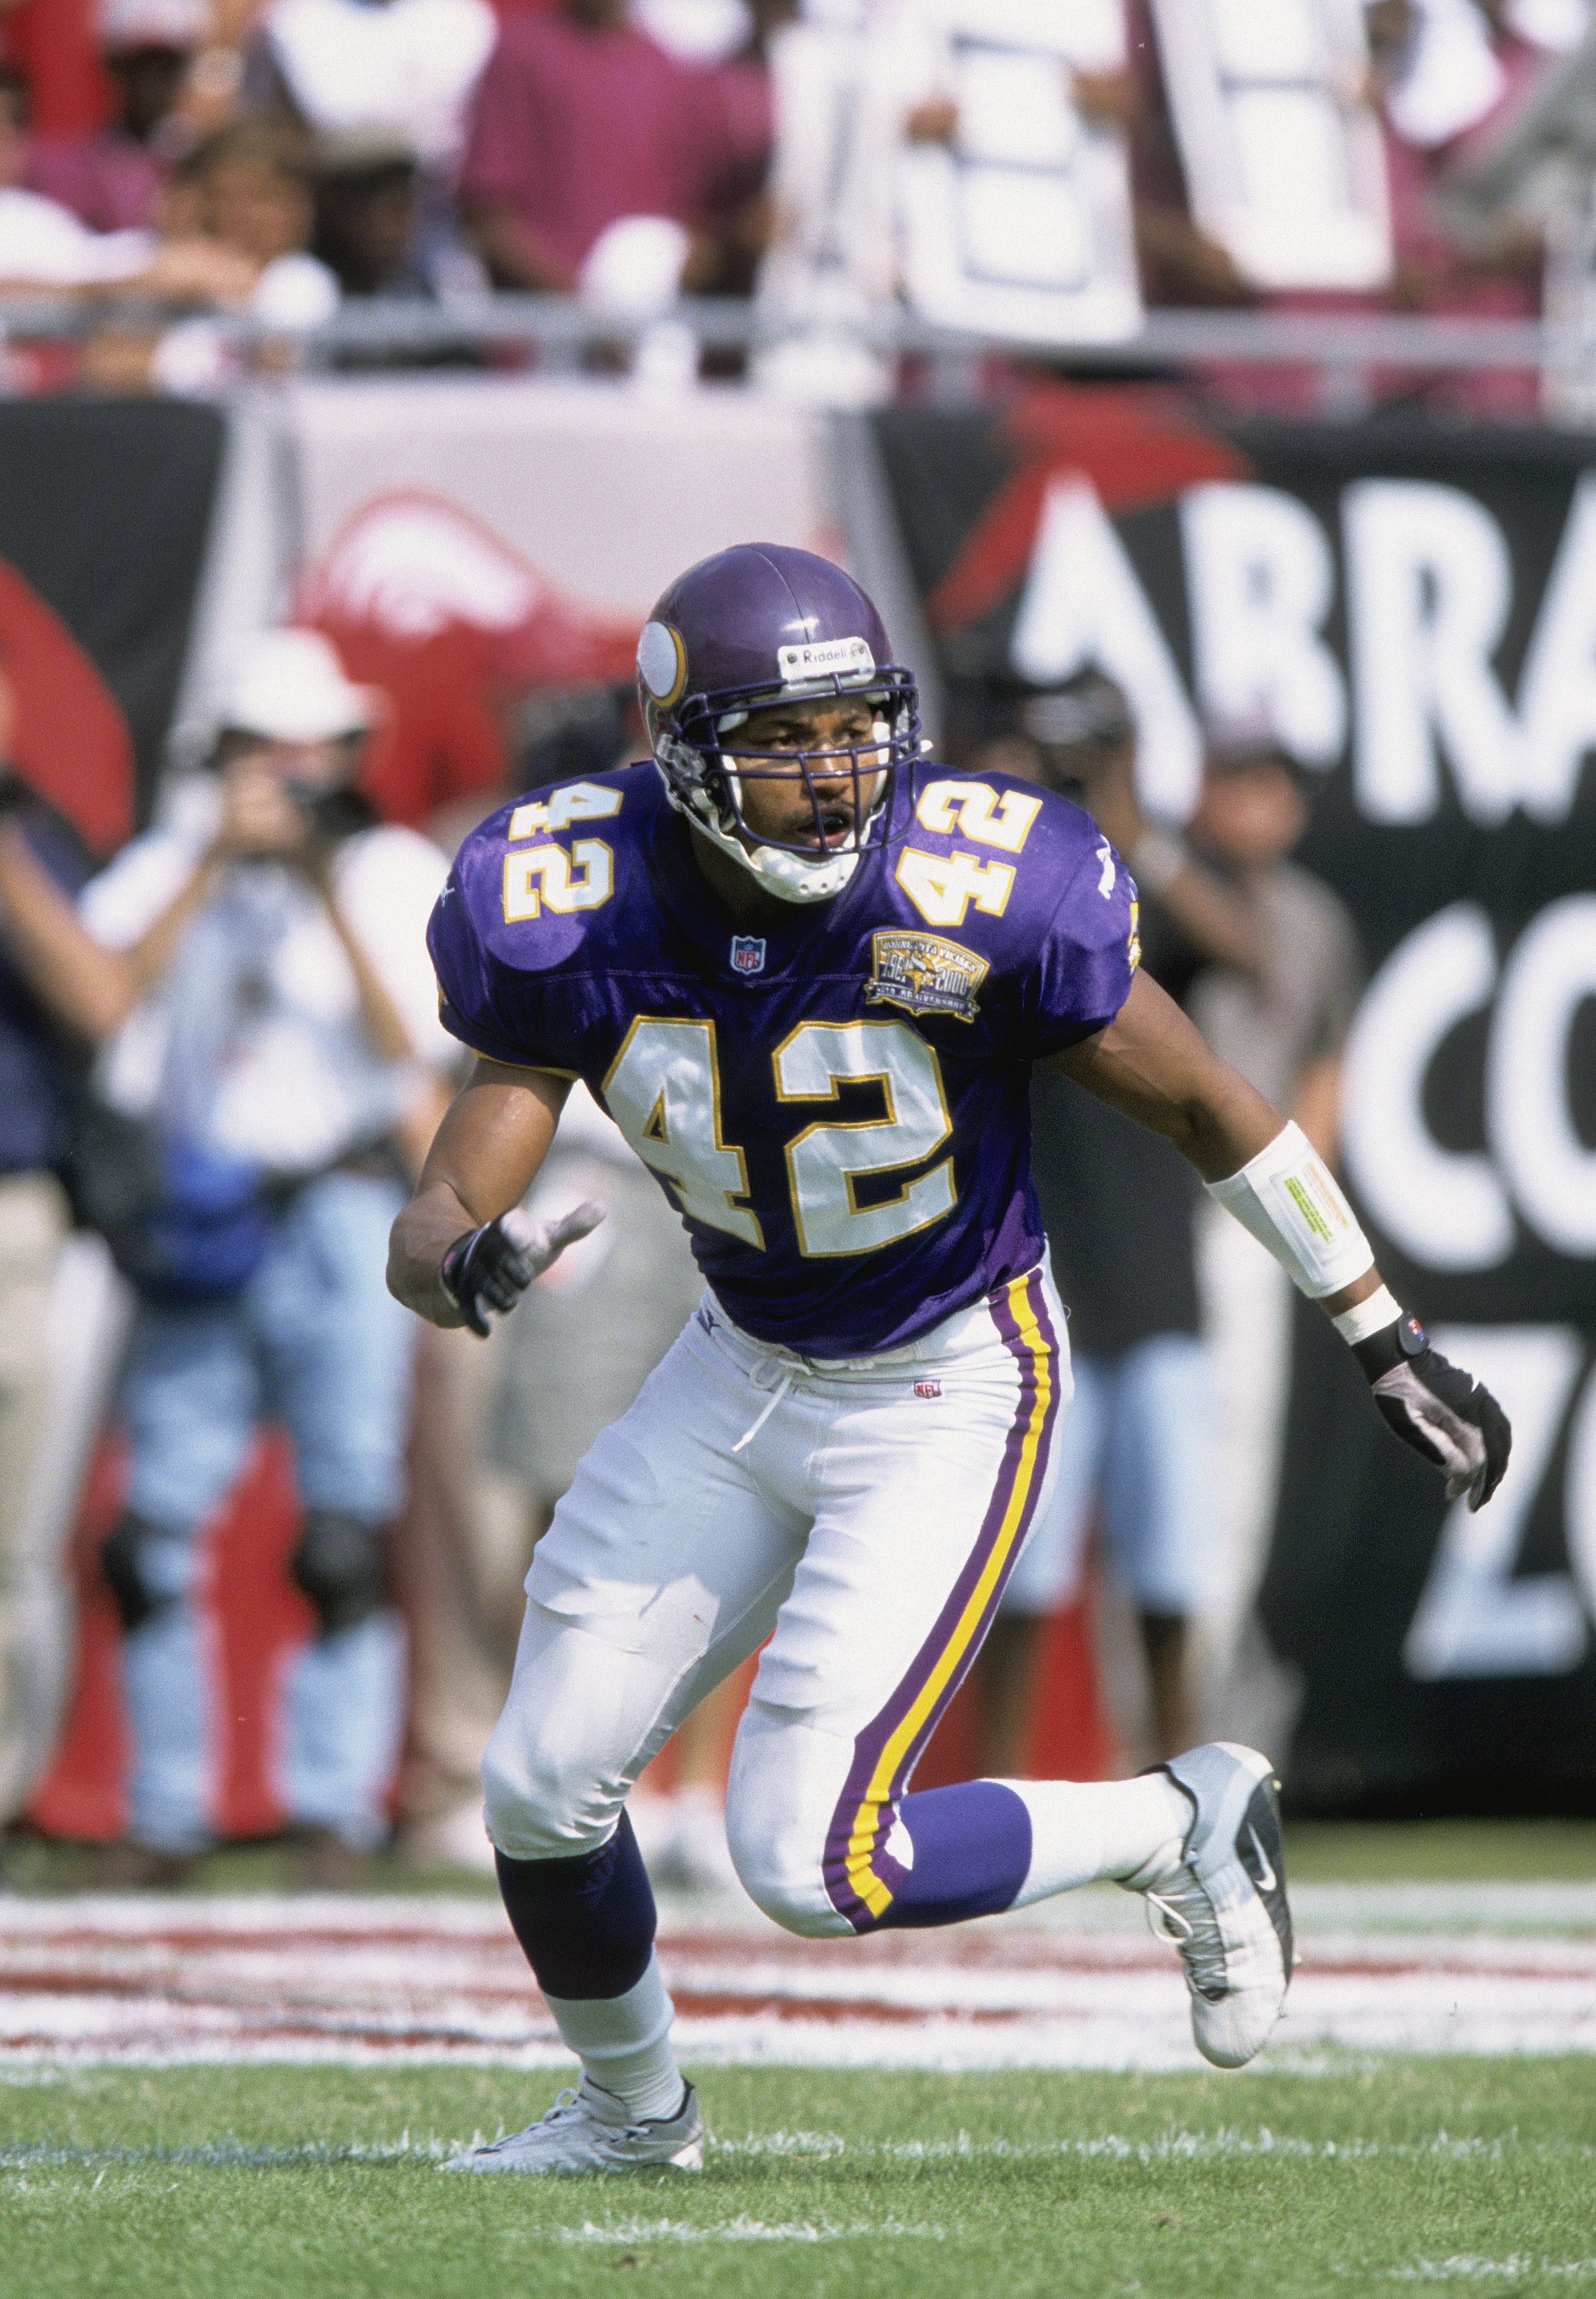 TAMPA, FL - OCTOBER 29: Orlando Thomas #42 of the Minnesota Vikings lines up against the Tampa Bay Buccaneers at Raymond James Stadium on October 29, 2000 in Tampa, Florida.